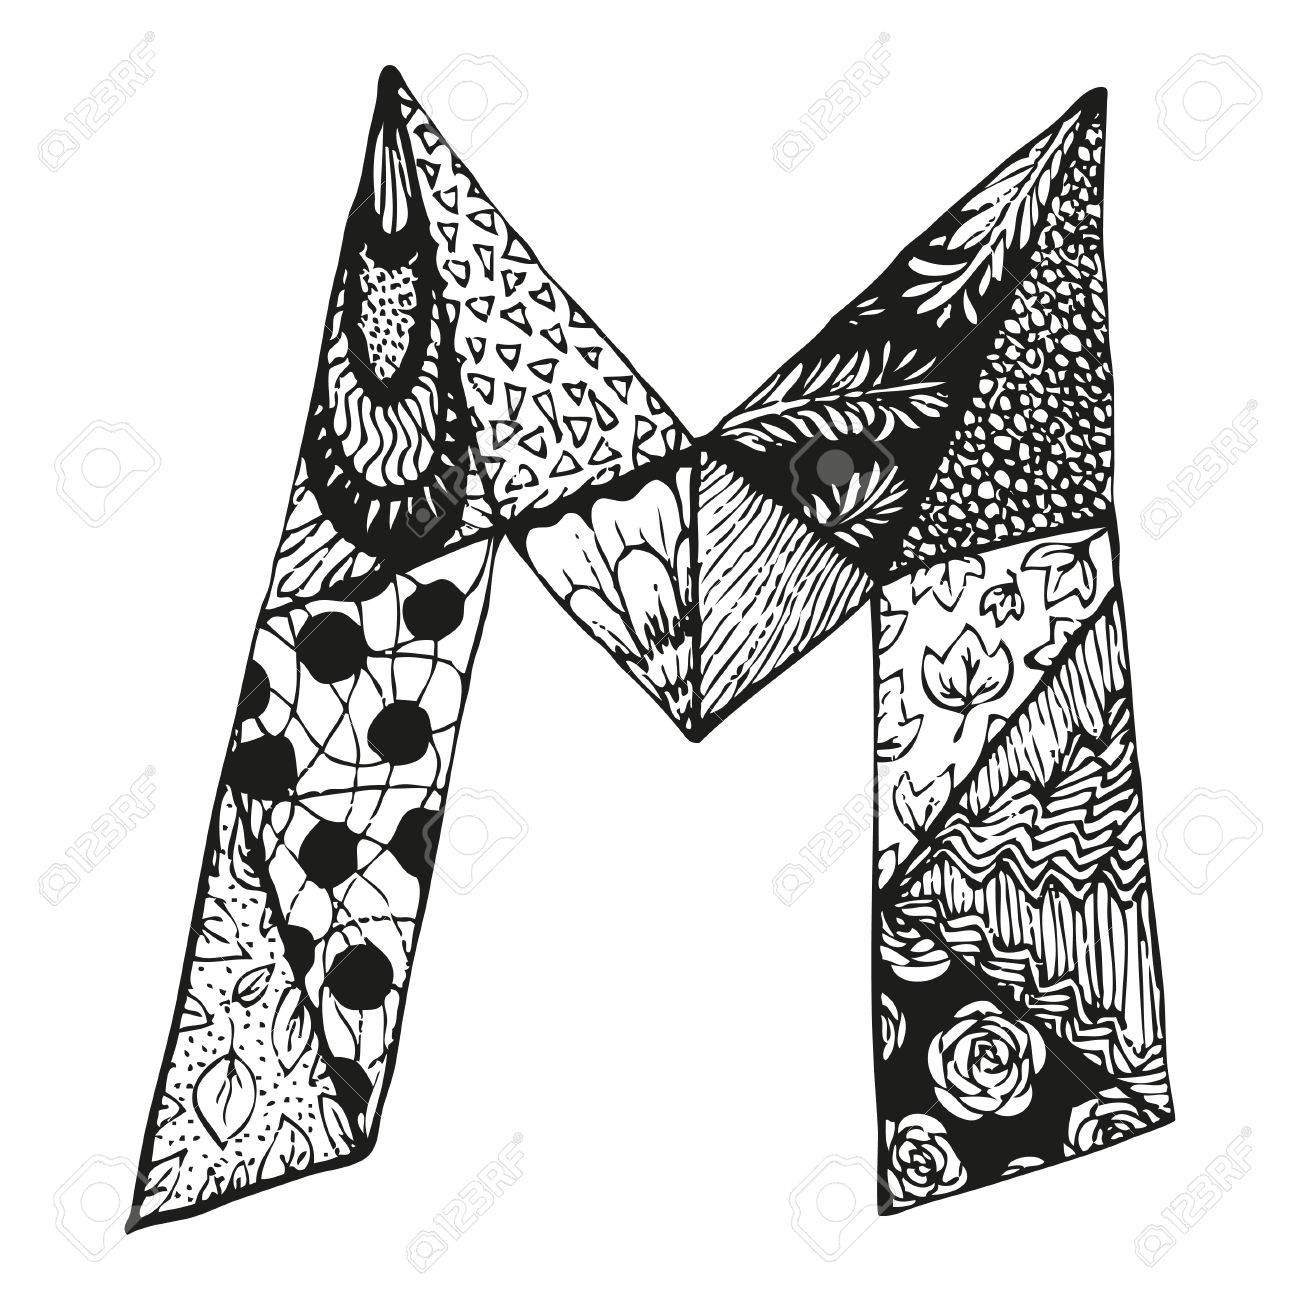 Vintage monogram M. Doodle alphabet character with patterns or coloring book page. - 63042912